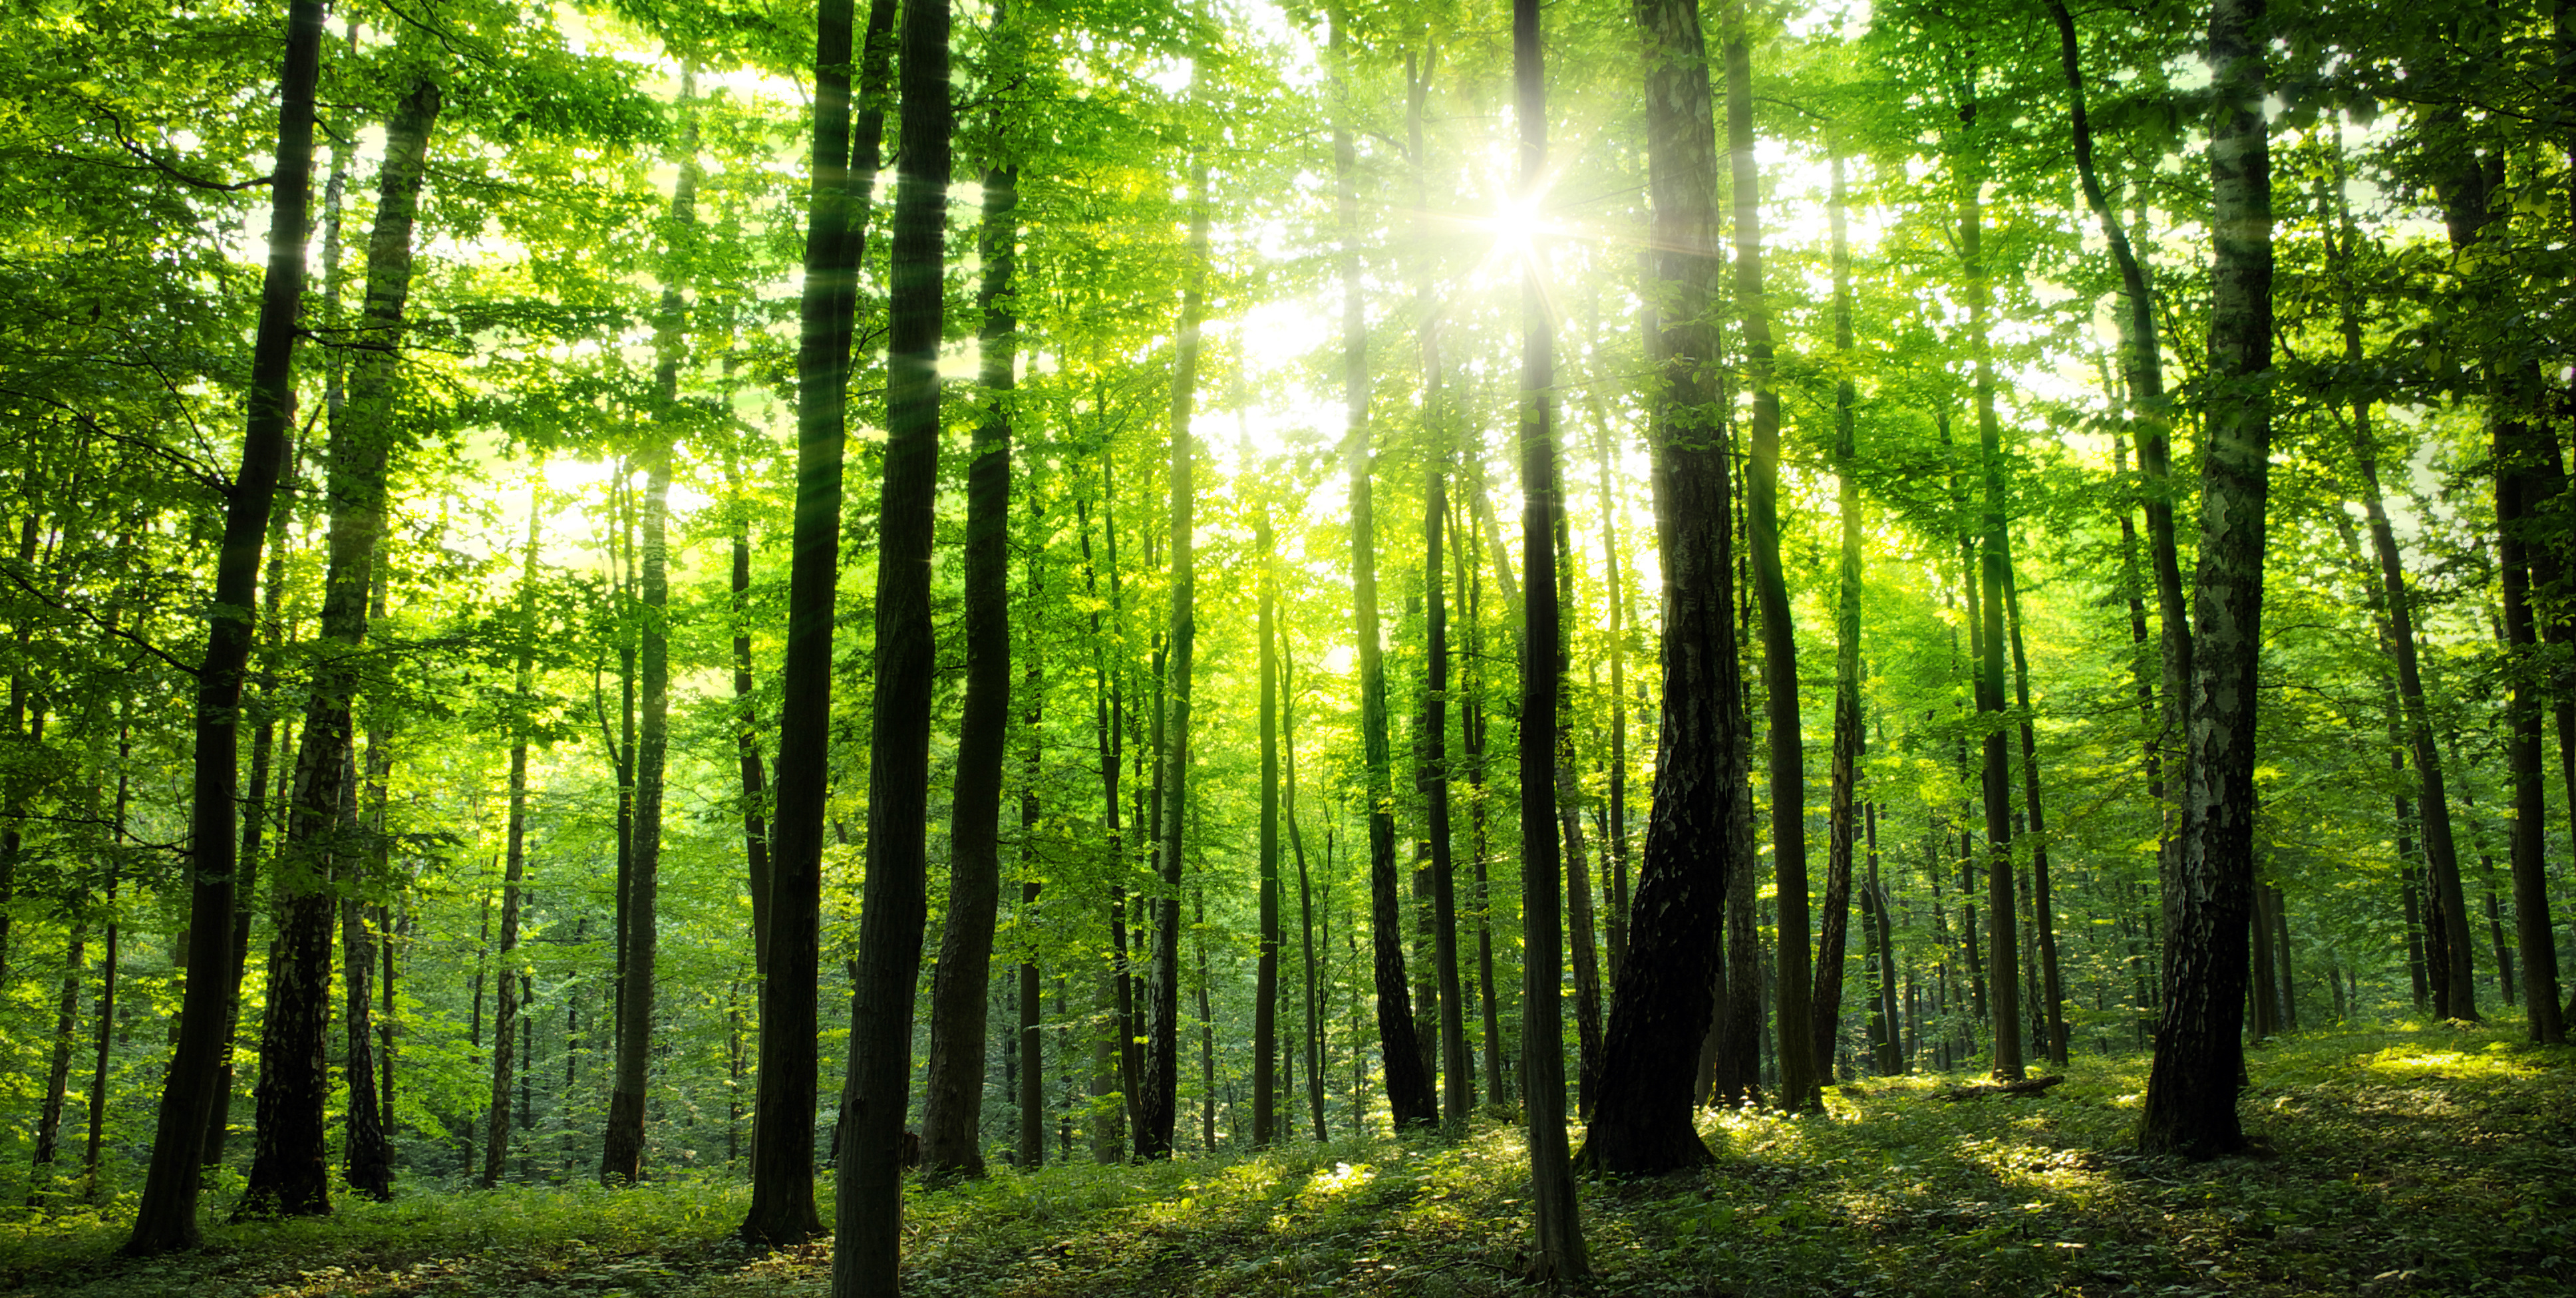 Trees, Forest, Nature, Healing in Nature, Forest bathing for health and well-being